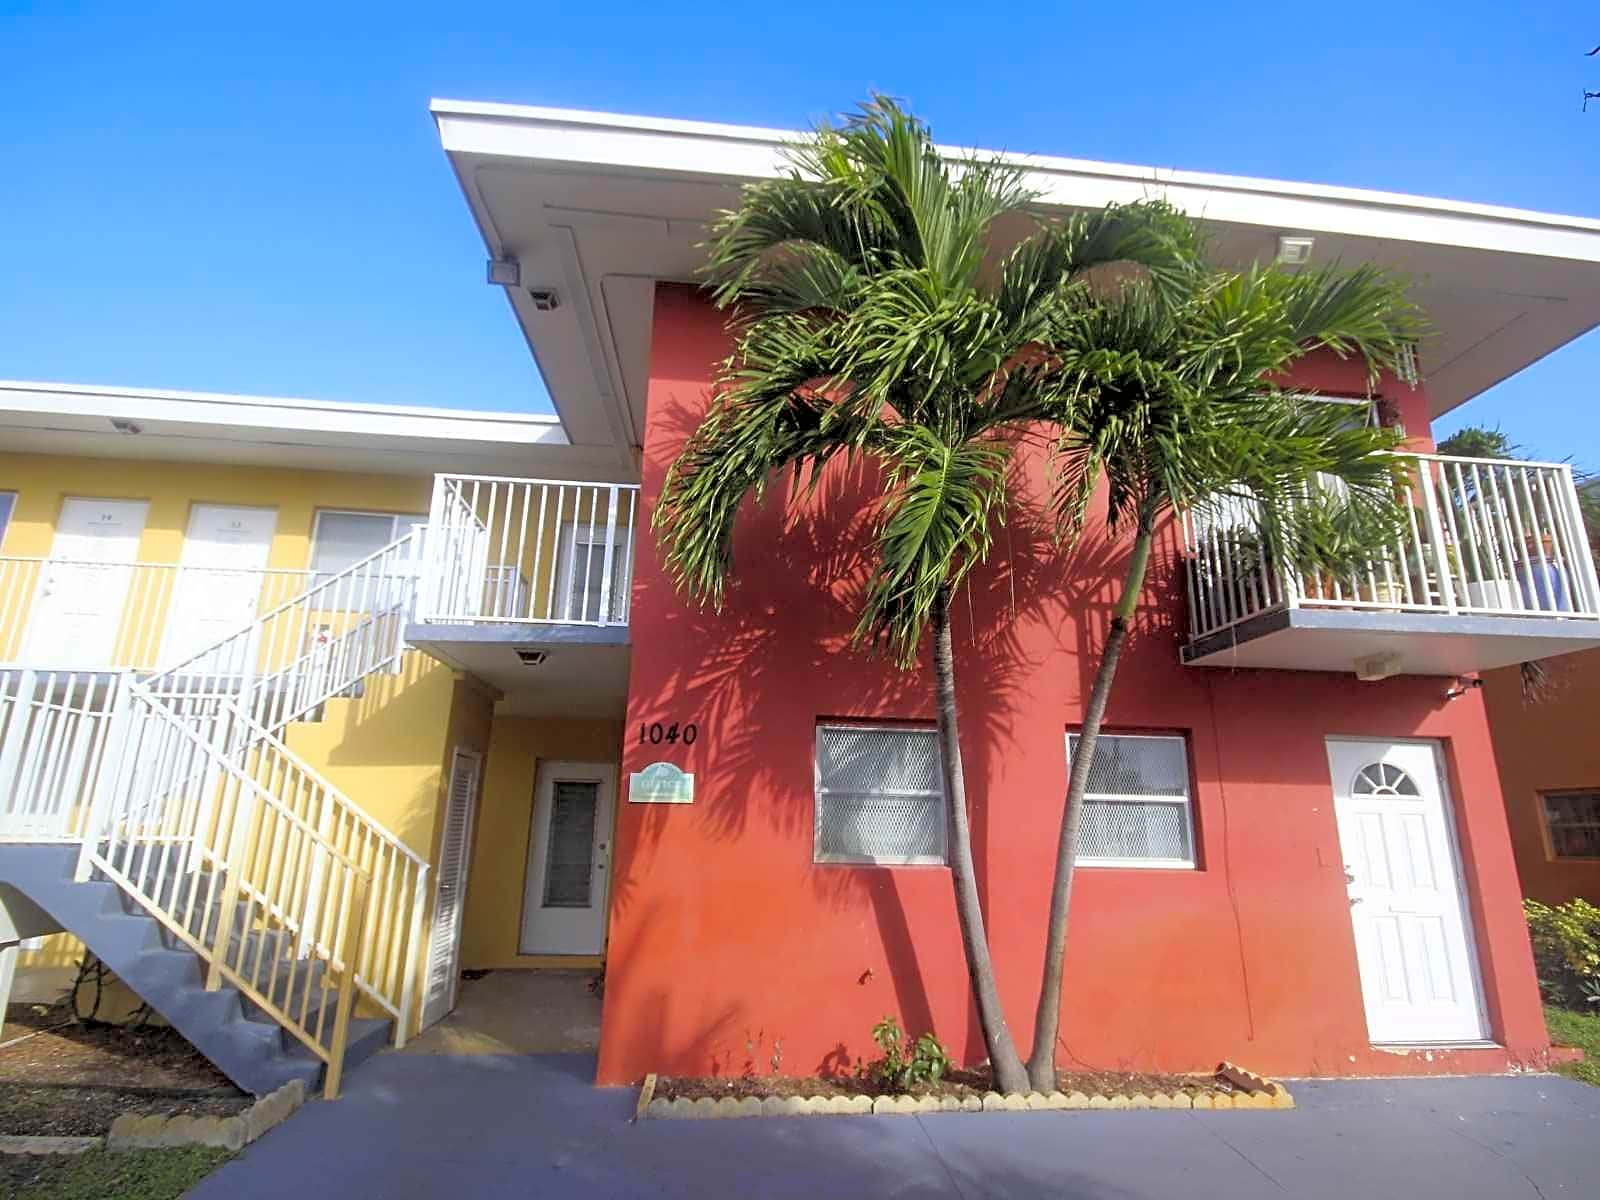 Photo: Fort Lauderdale Apartment for Rent - $910.00 / month; 2 Bd & 1 Ba